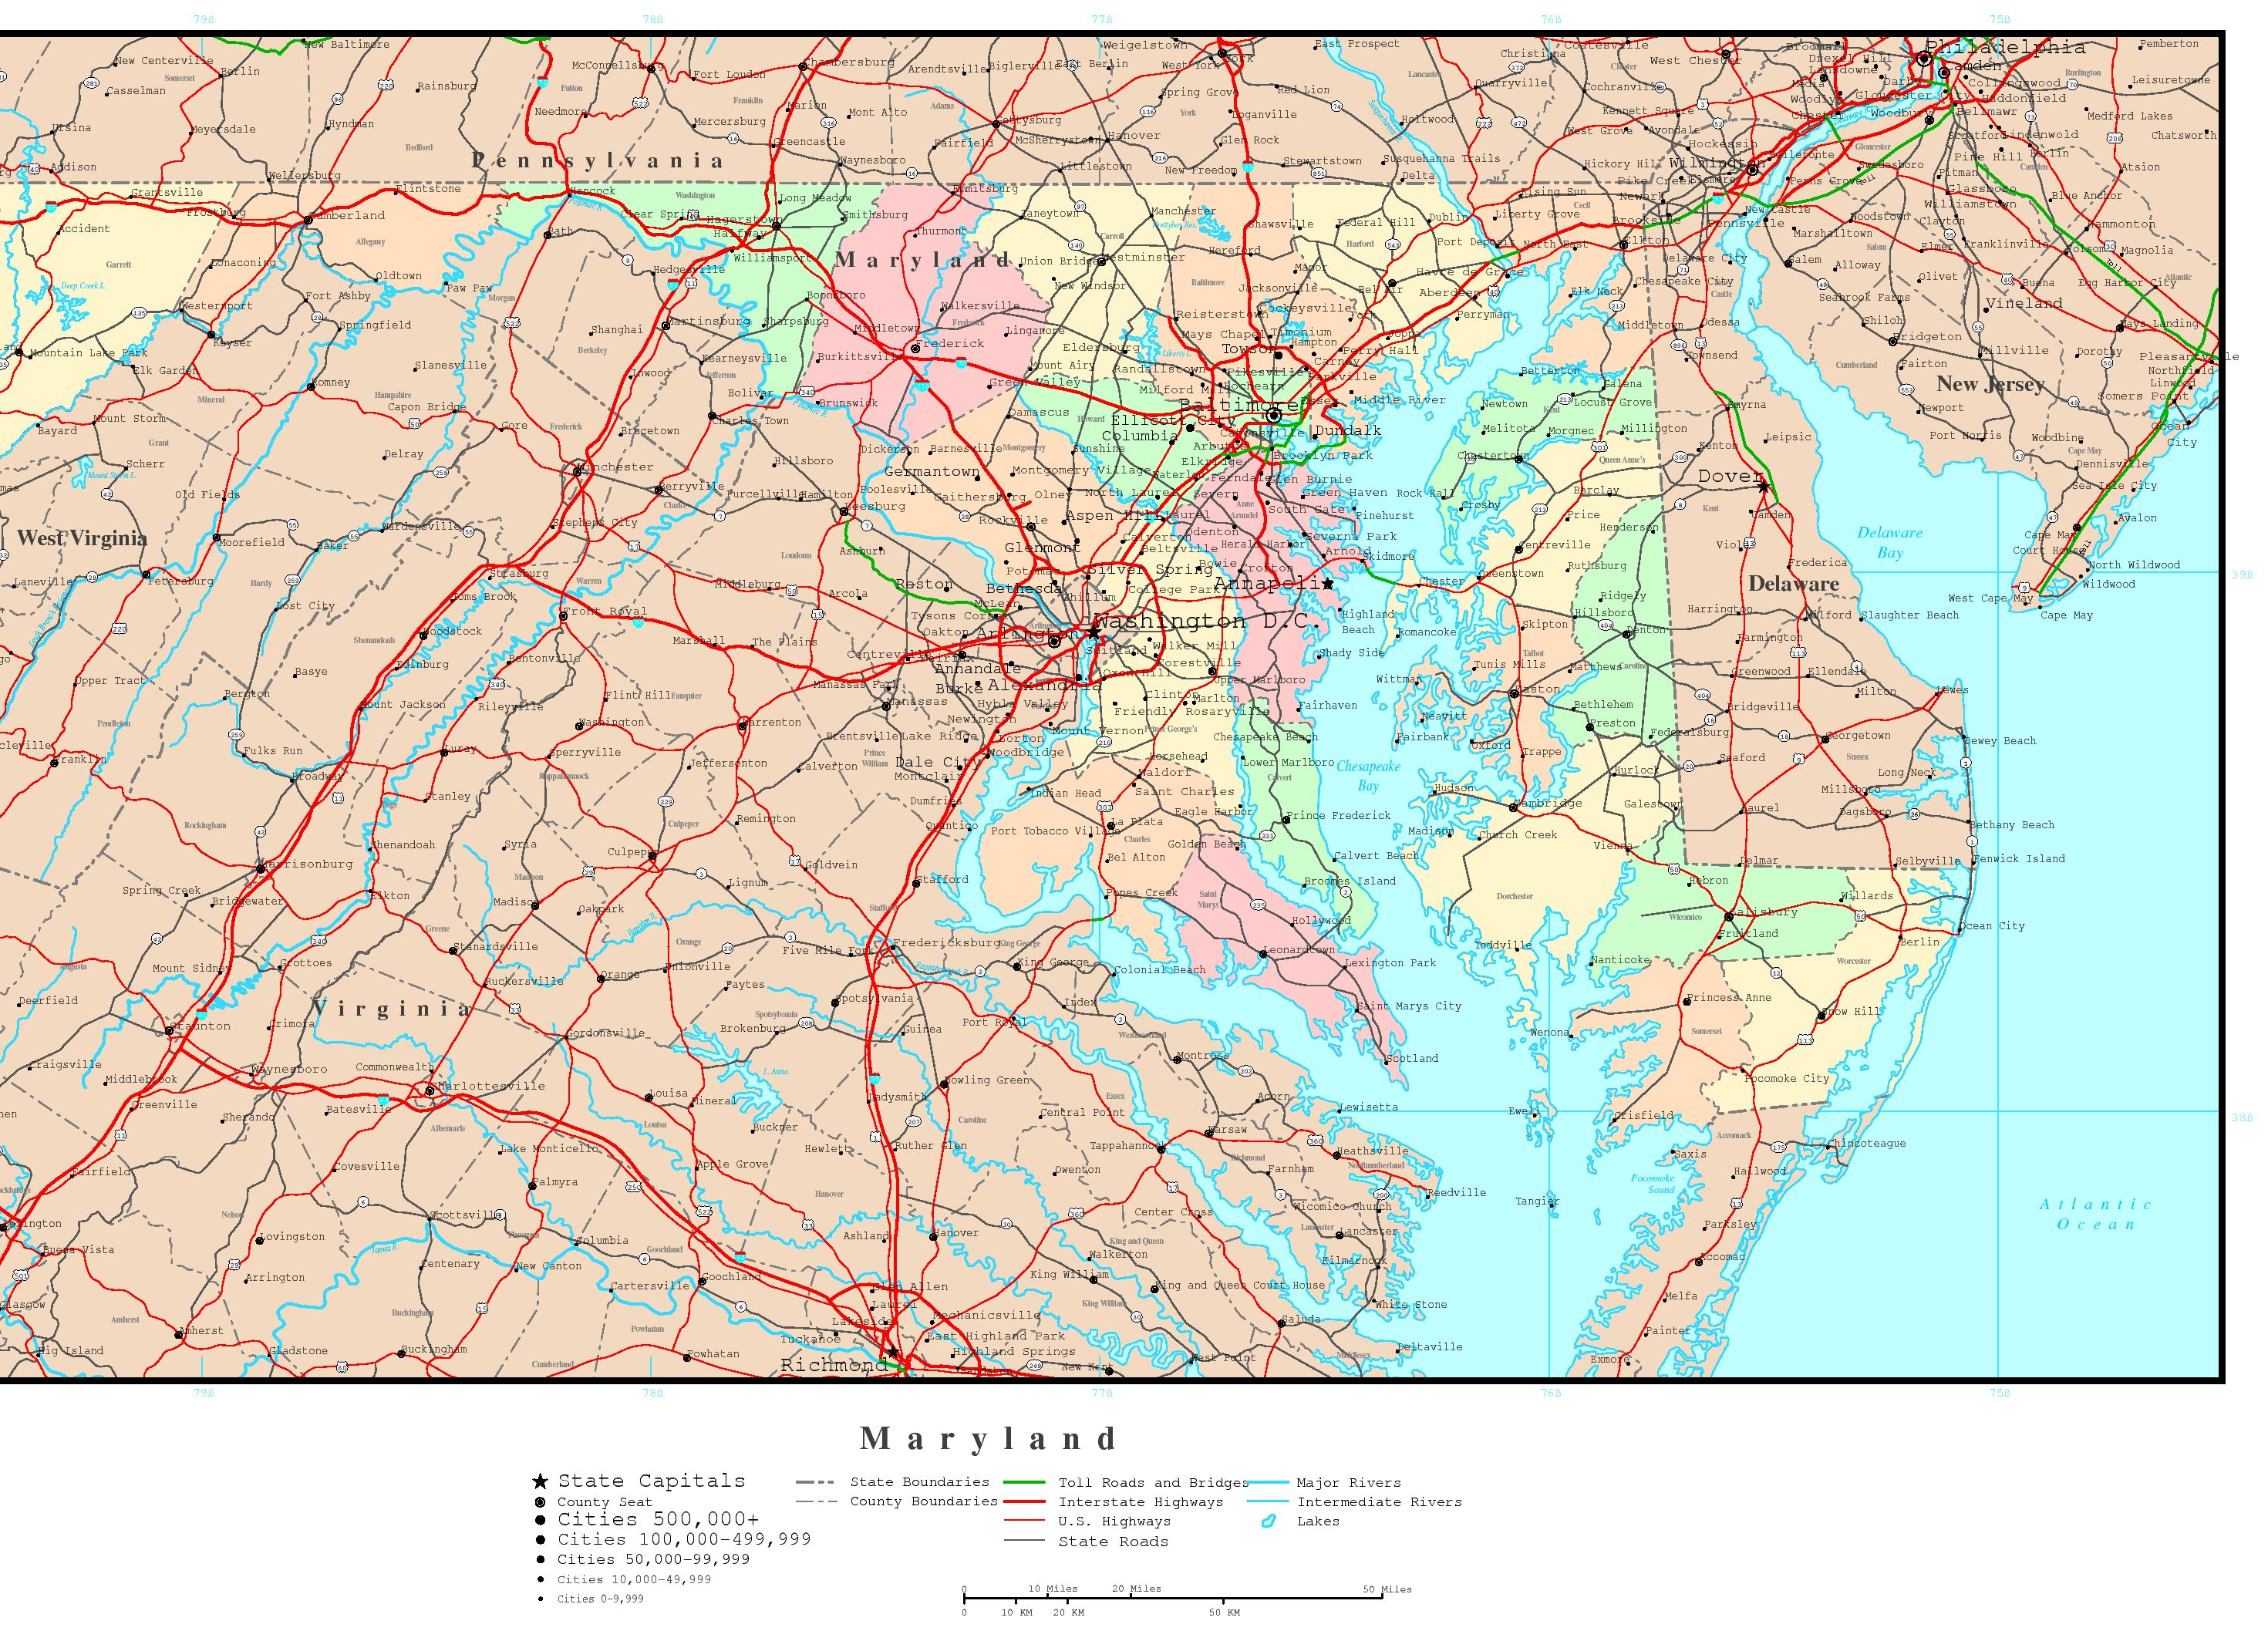 Clickable Map Of Maryland United States Marylandgif Map Of - Delaware on us map